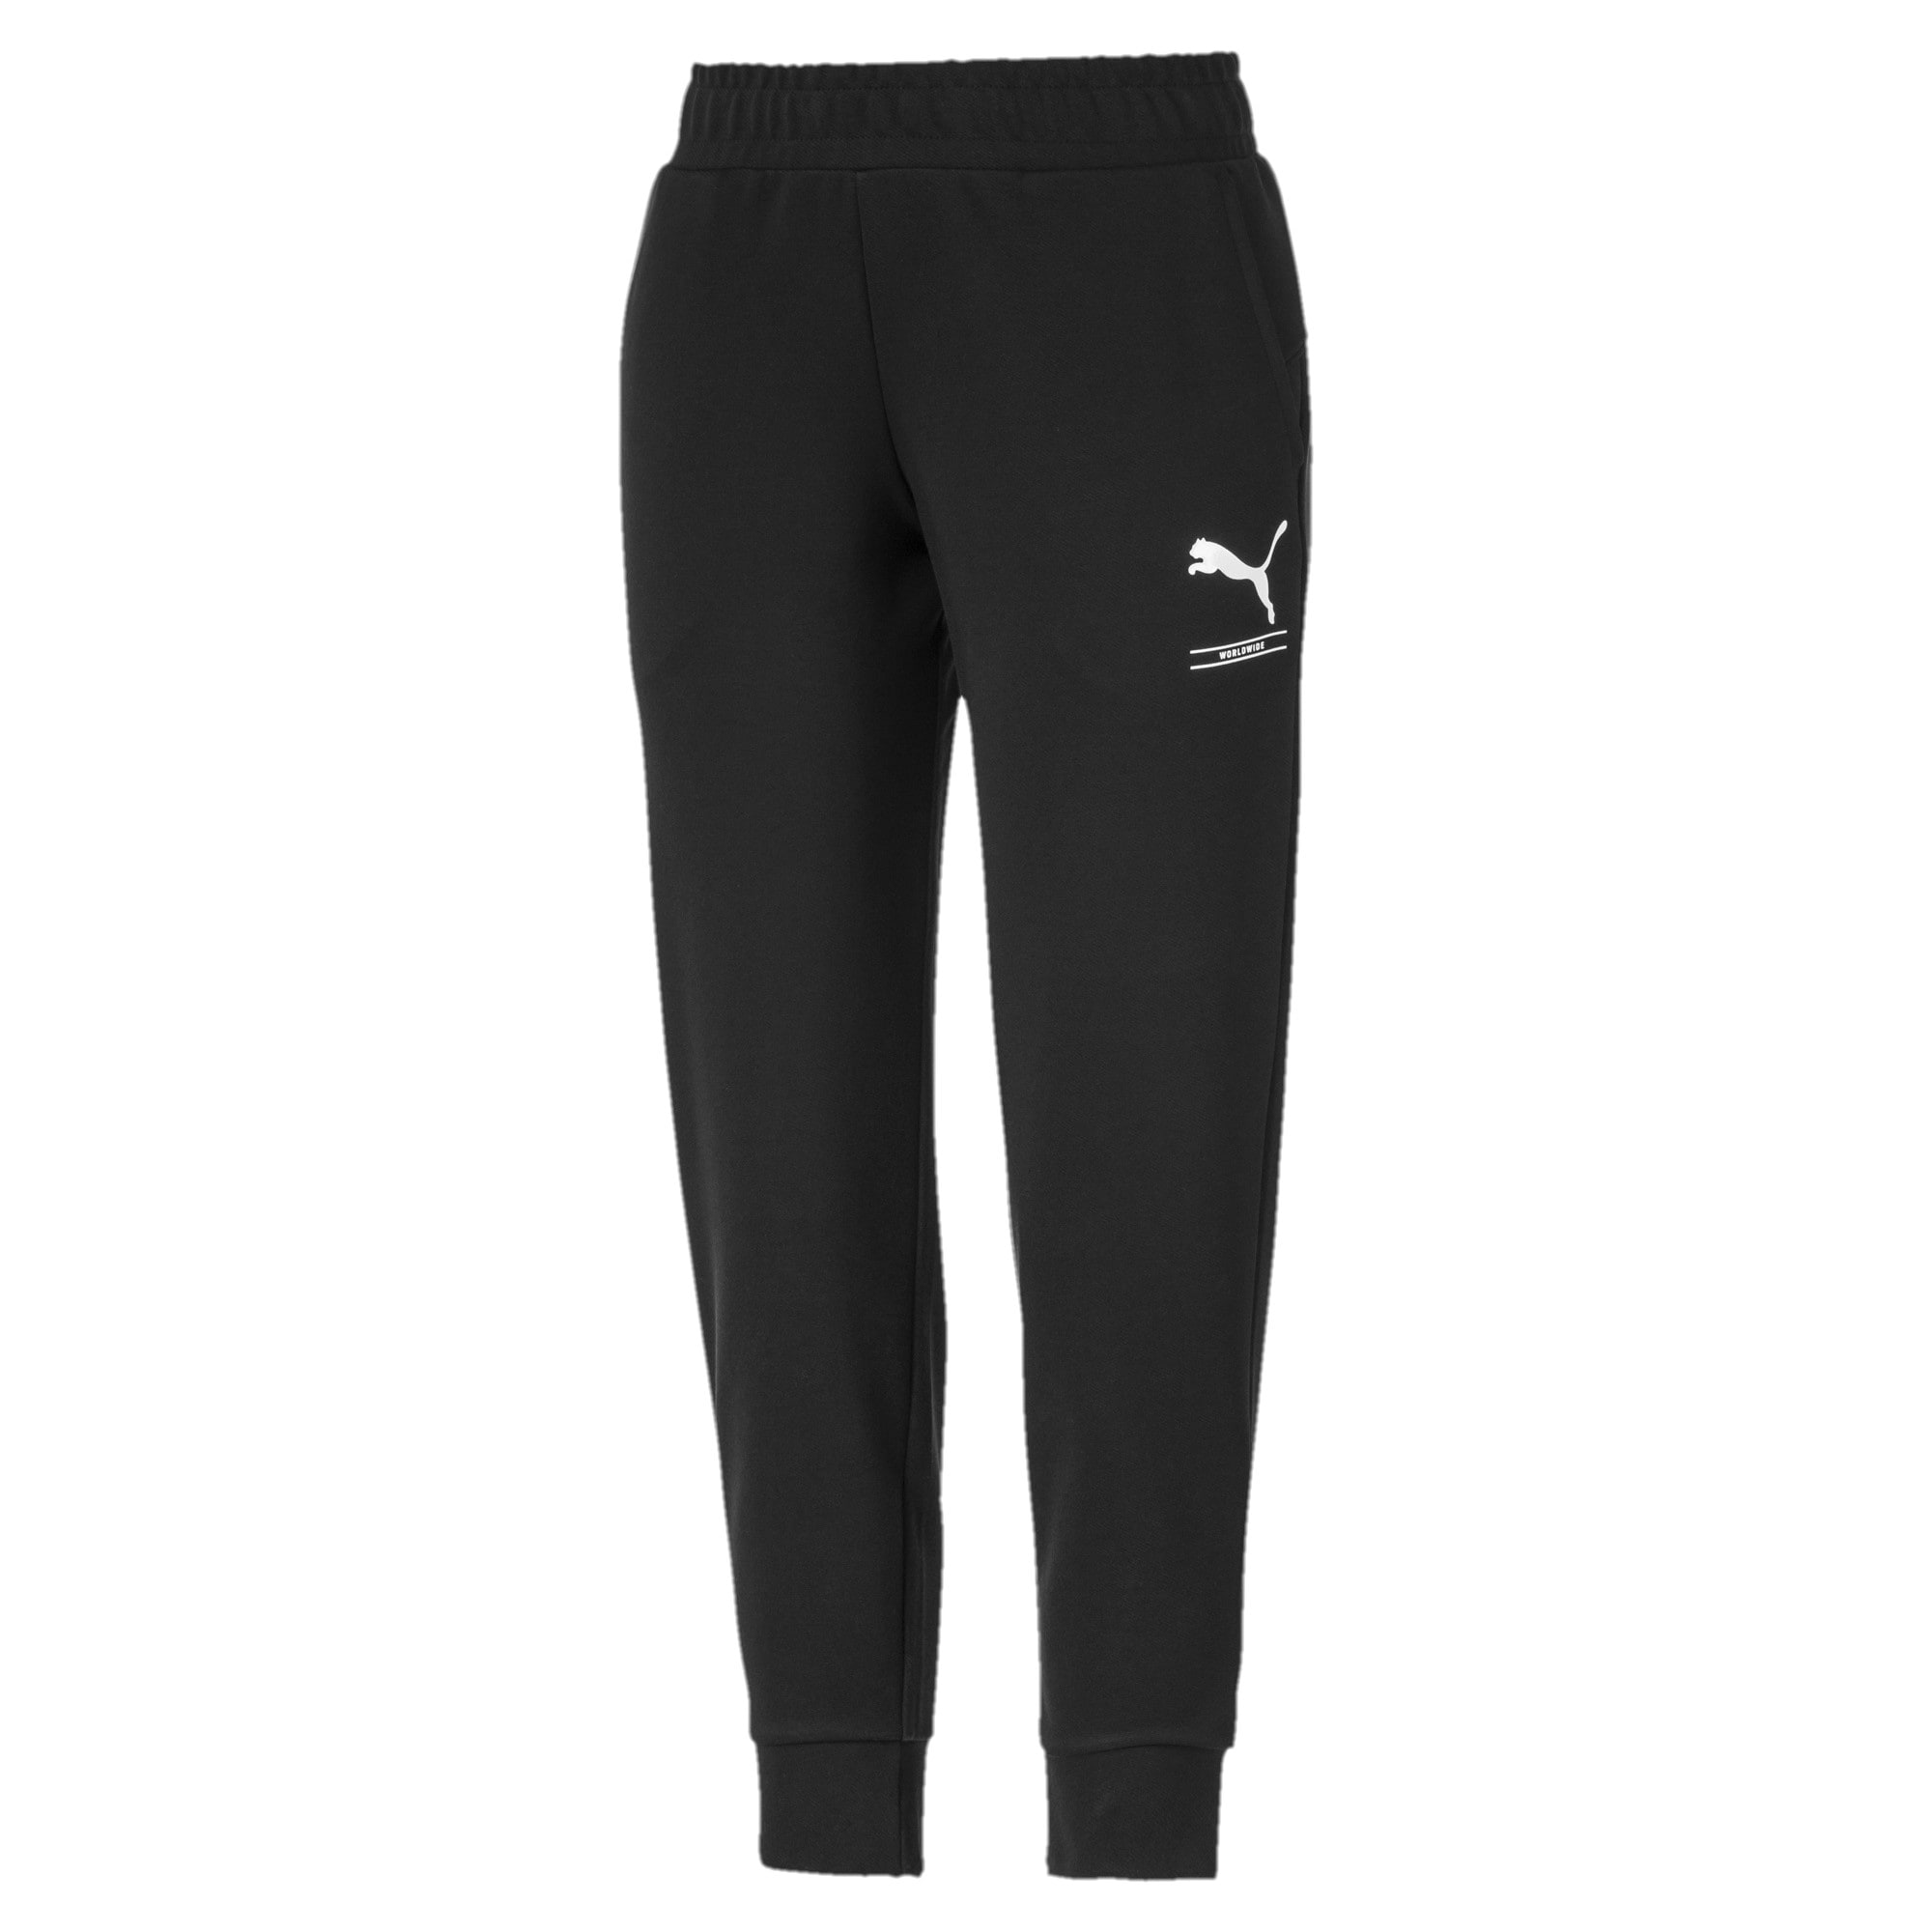 Thumbnail 4 of NU-TILITY Women's Sweatpants, Puma Black, medium